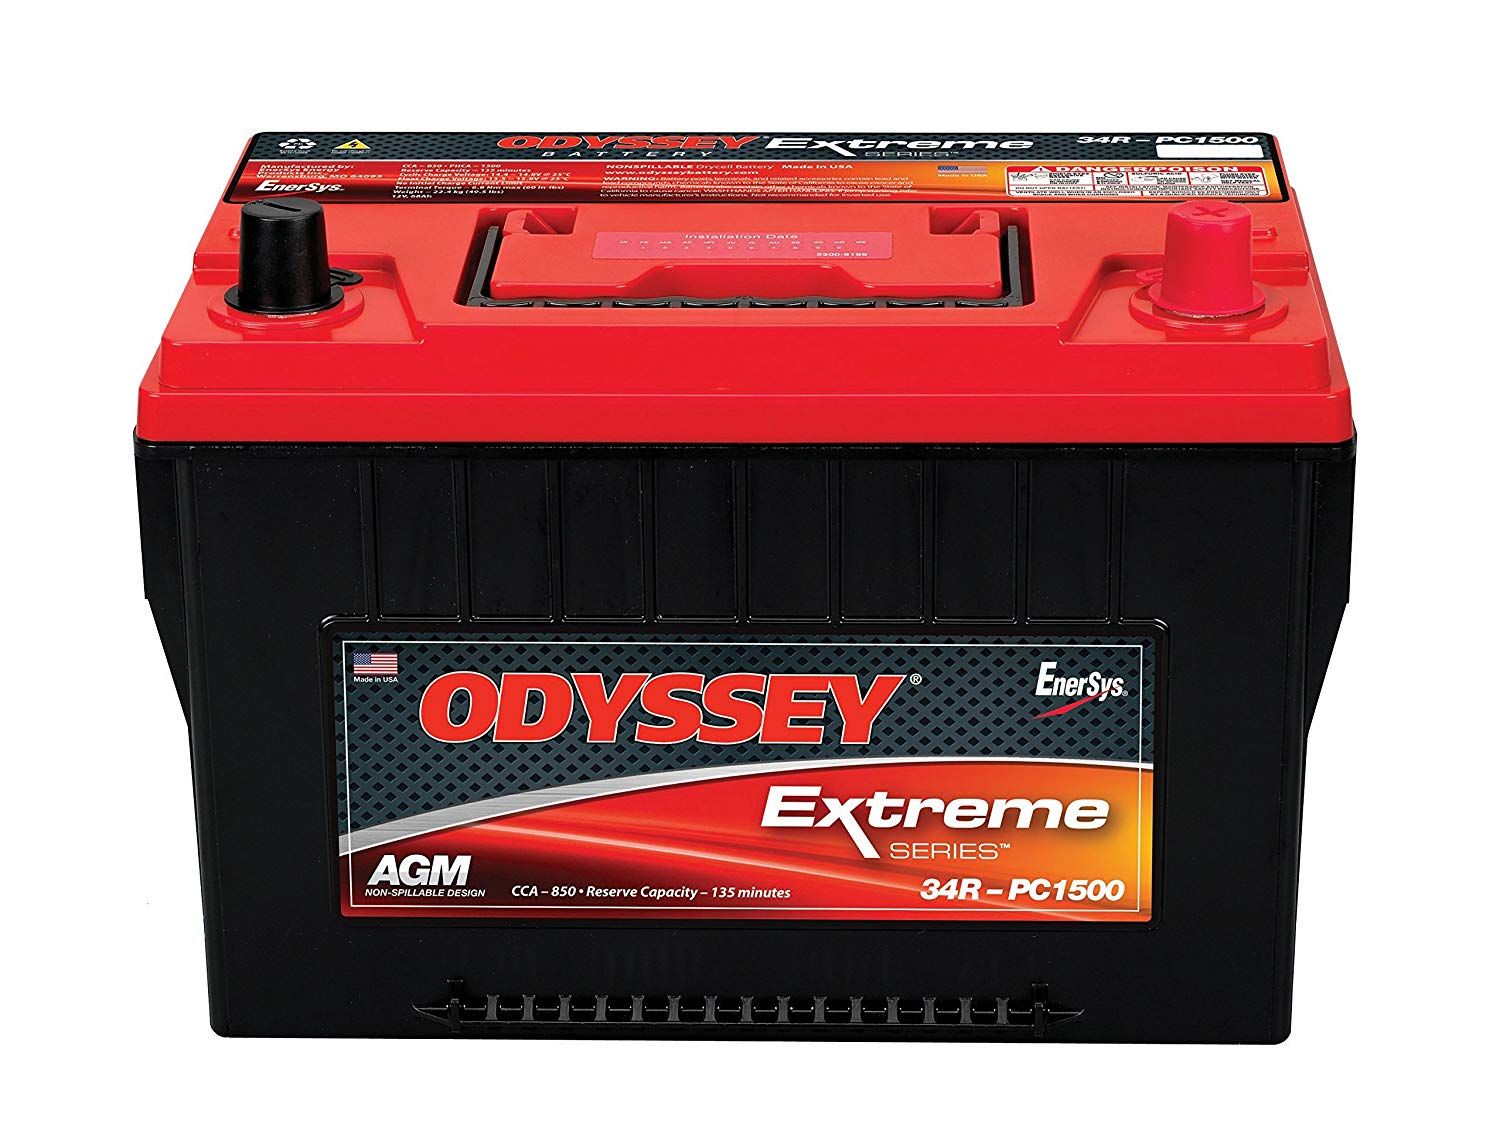 Odyssey Extreme truck battery